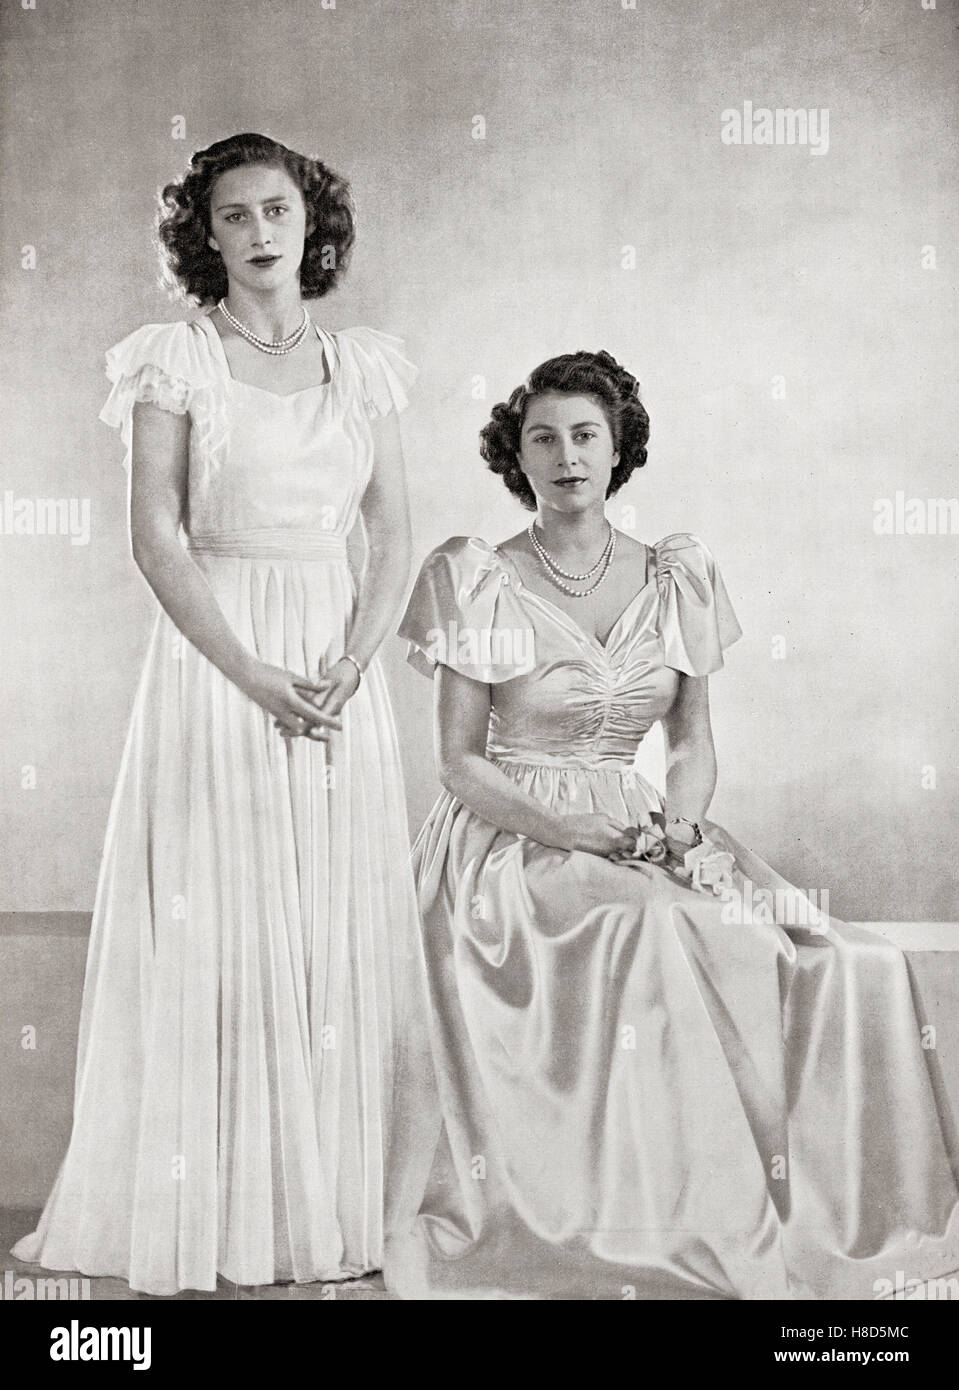 Princess Margaret Left And Princess Elizabeth Future Queen